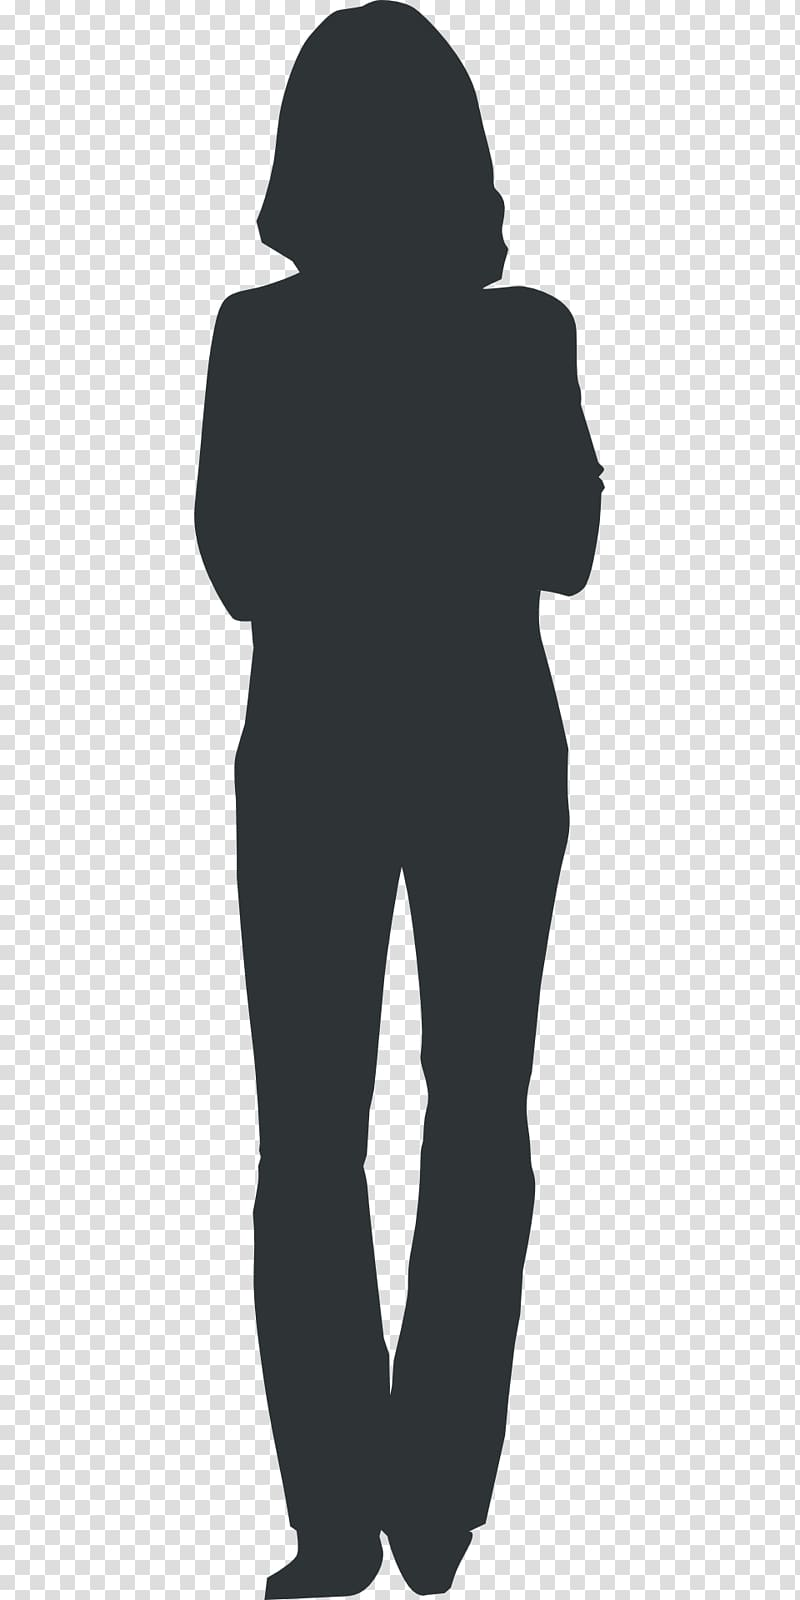 Woman Silhouette , WOMEN SUIT transparent background PNG.